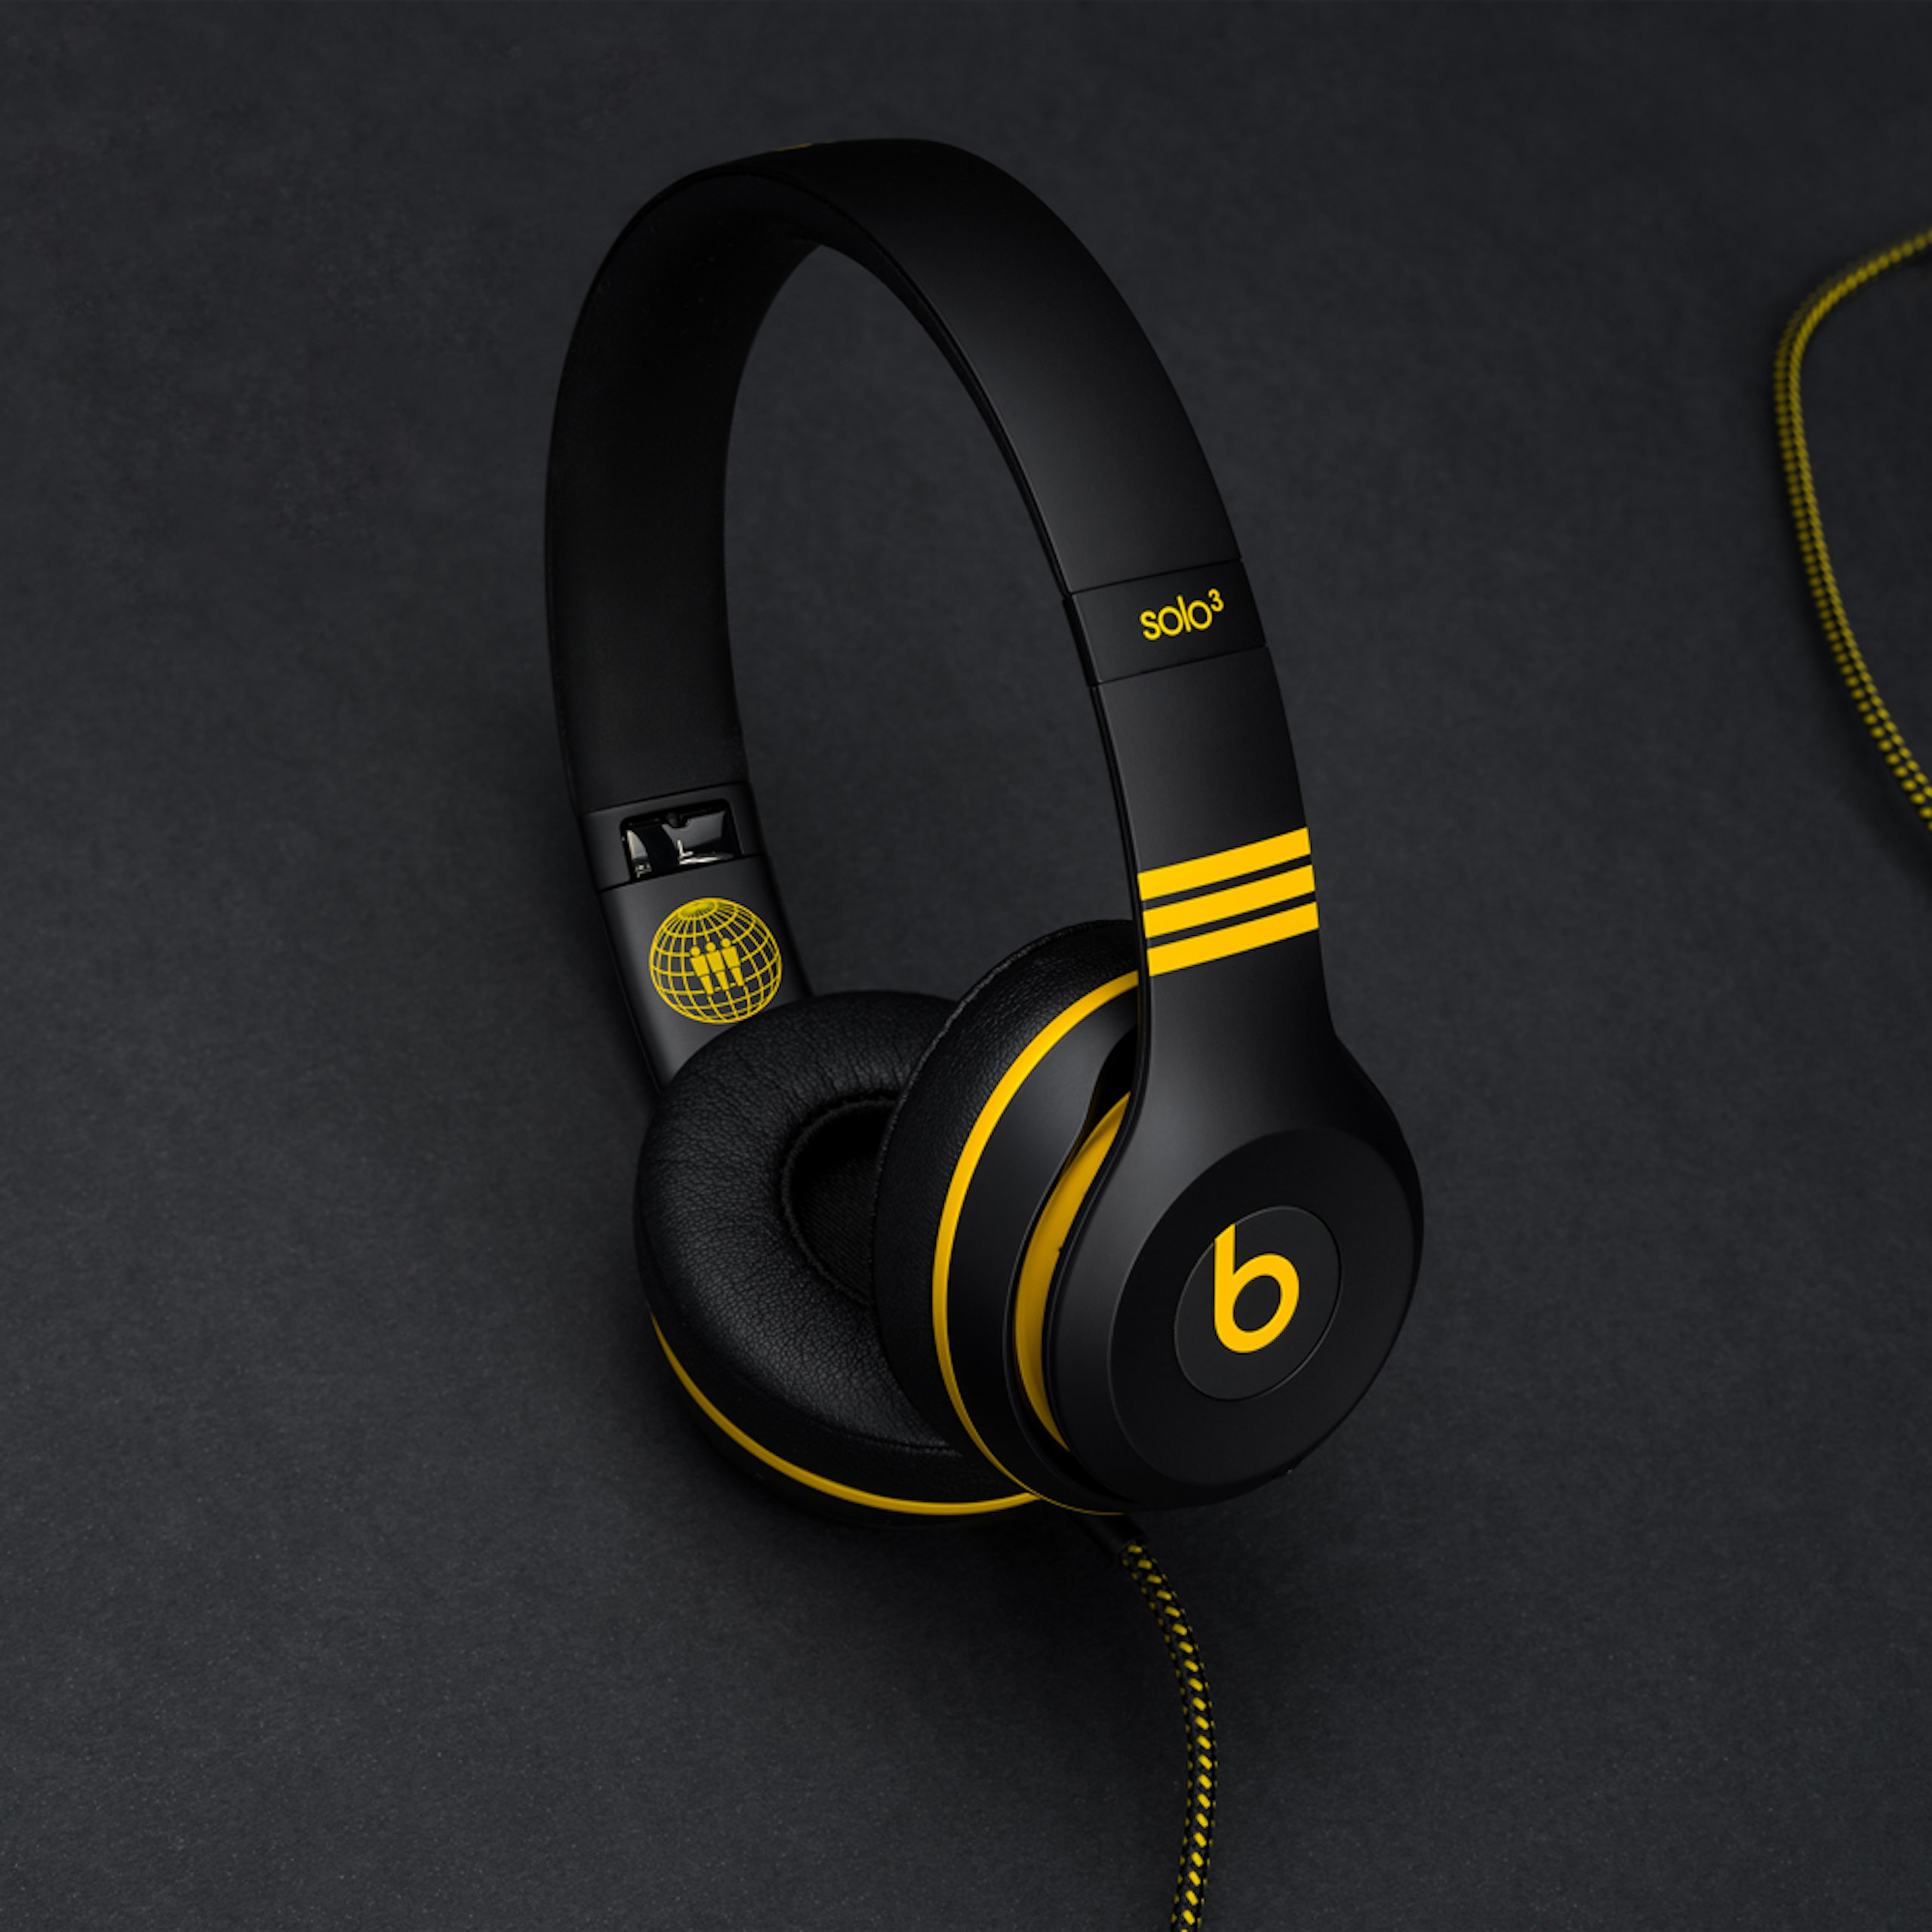 Beats By Dr Dre Limited Edition Headphone For Record Store Day Black Friday